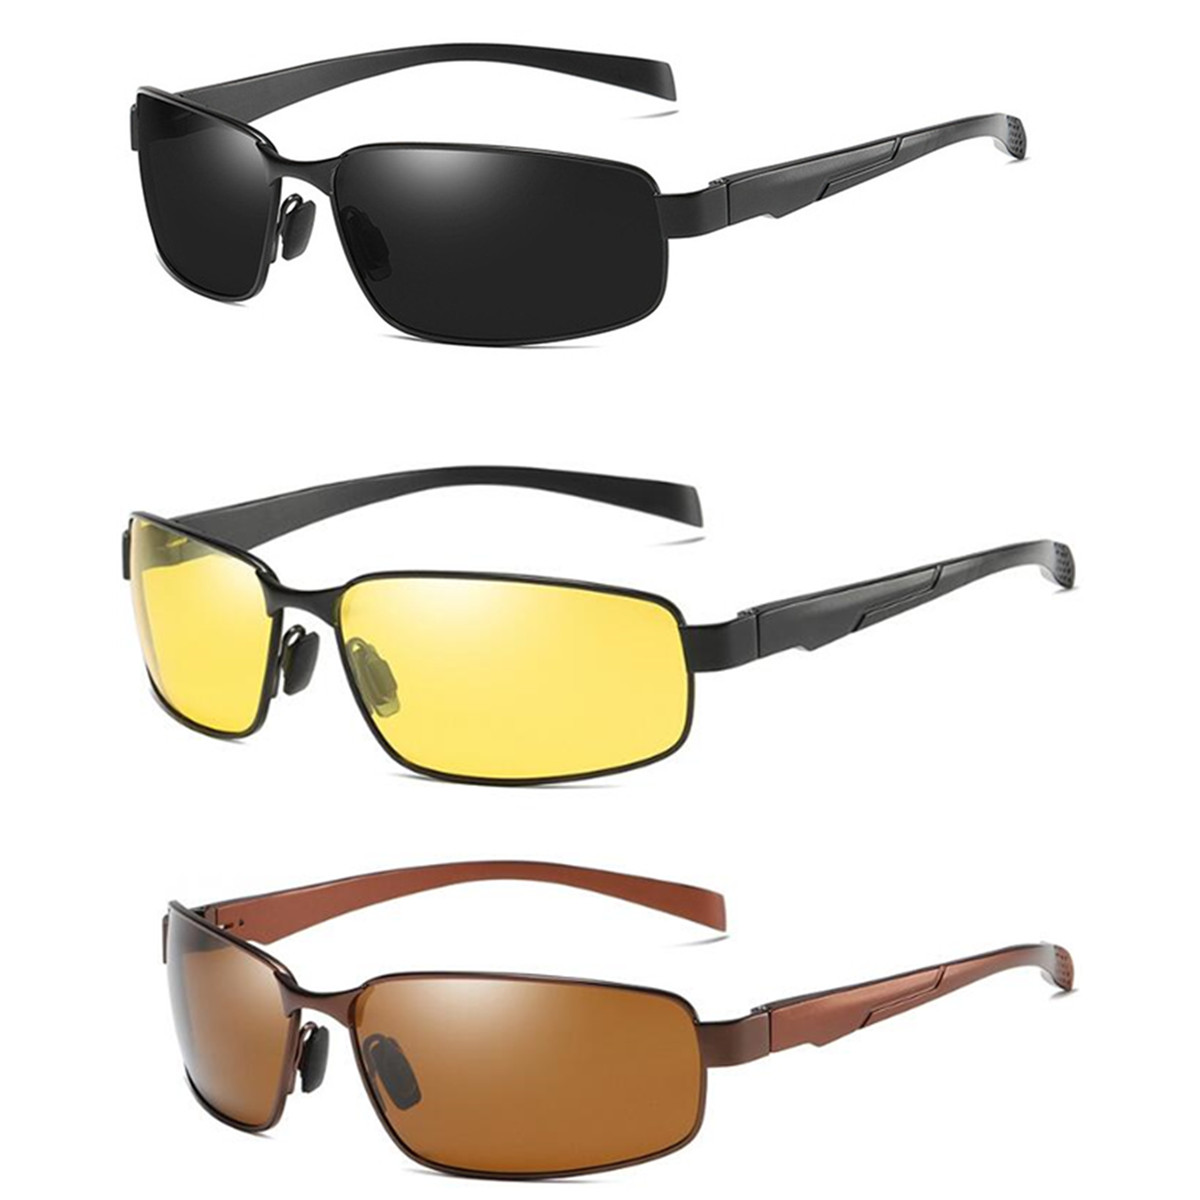 Polarized Sunglasses Anti-Glare Lens TAC Men Women Driving Night Vision Glasse